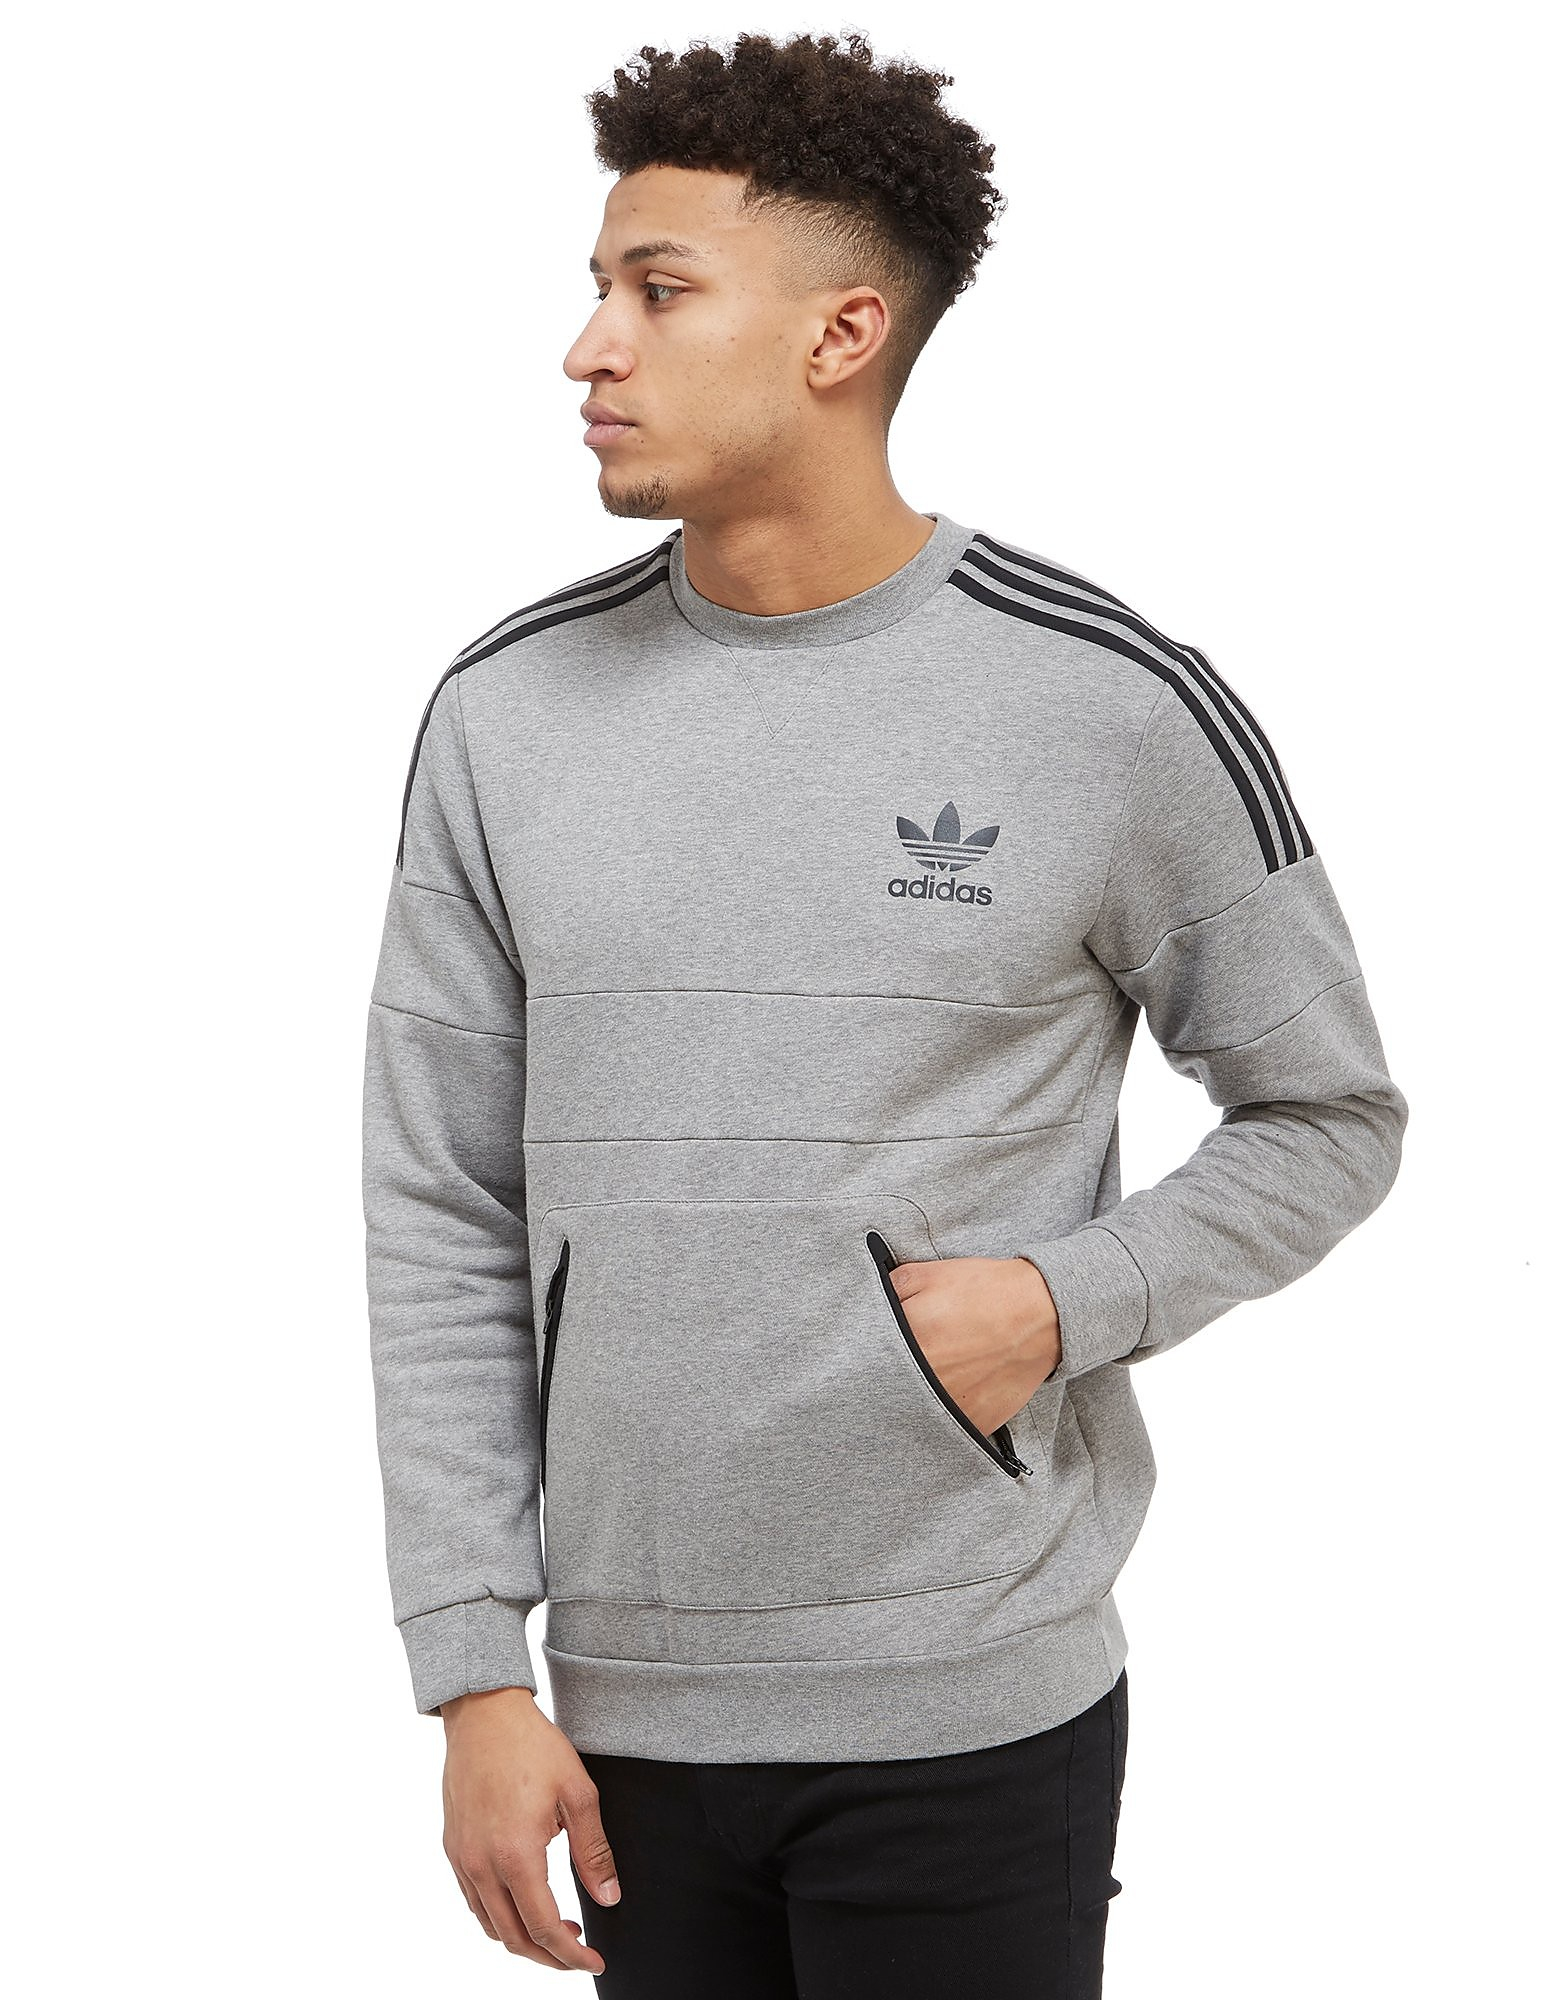 adidas Originals Nomad Pocket Sweatshirt